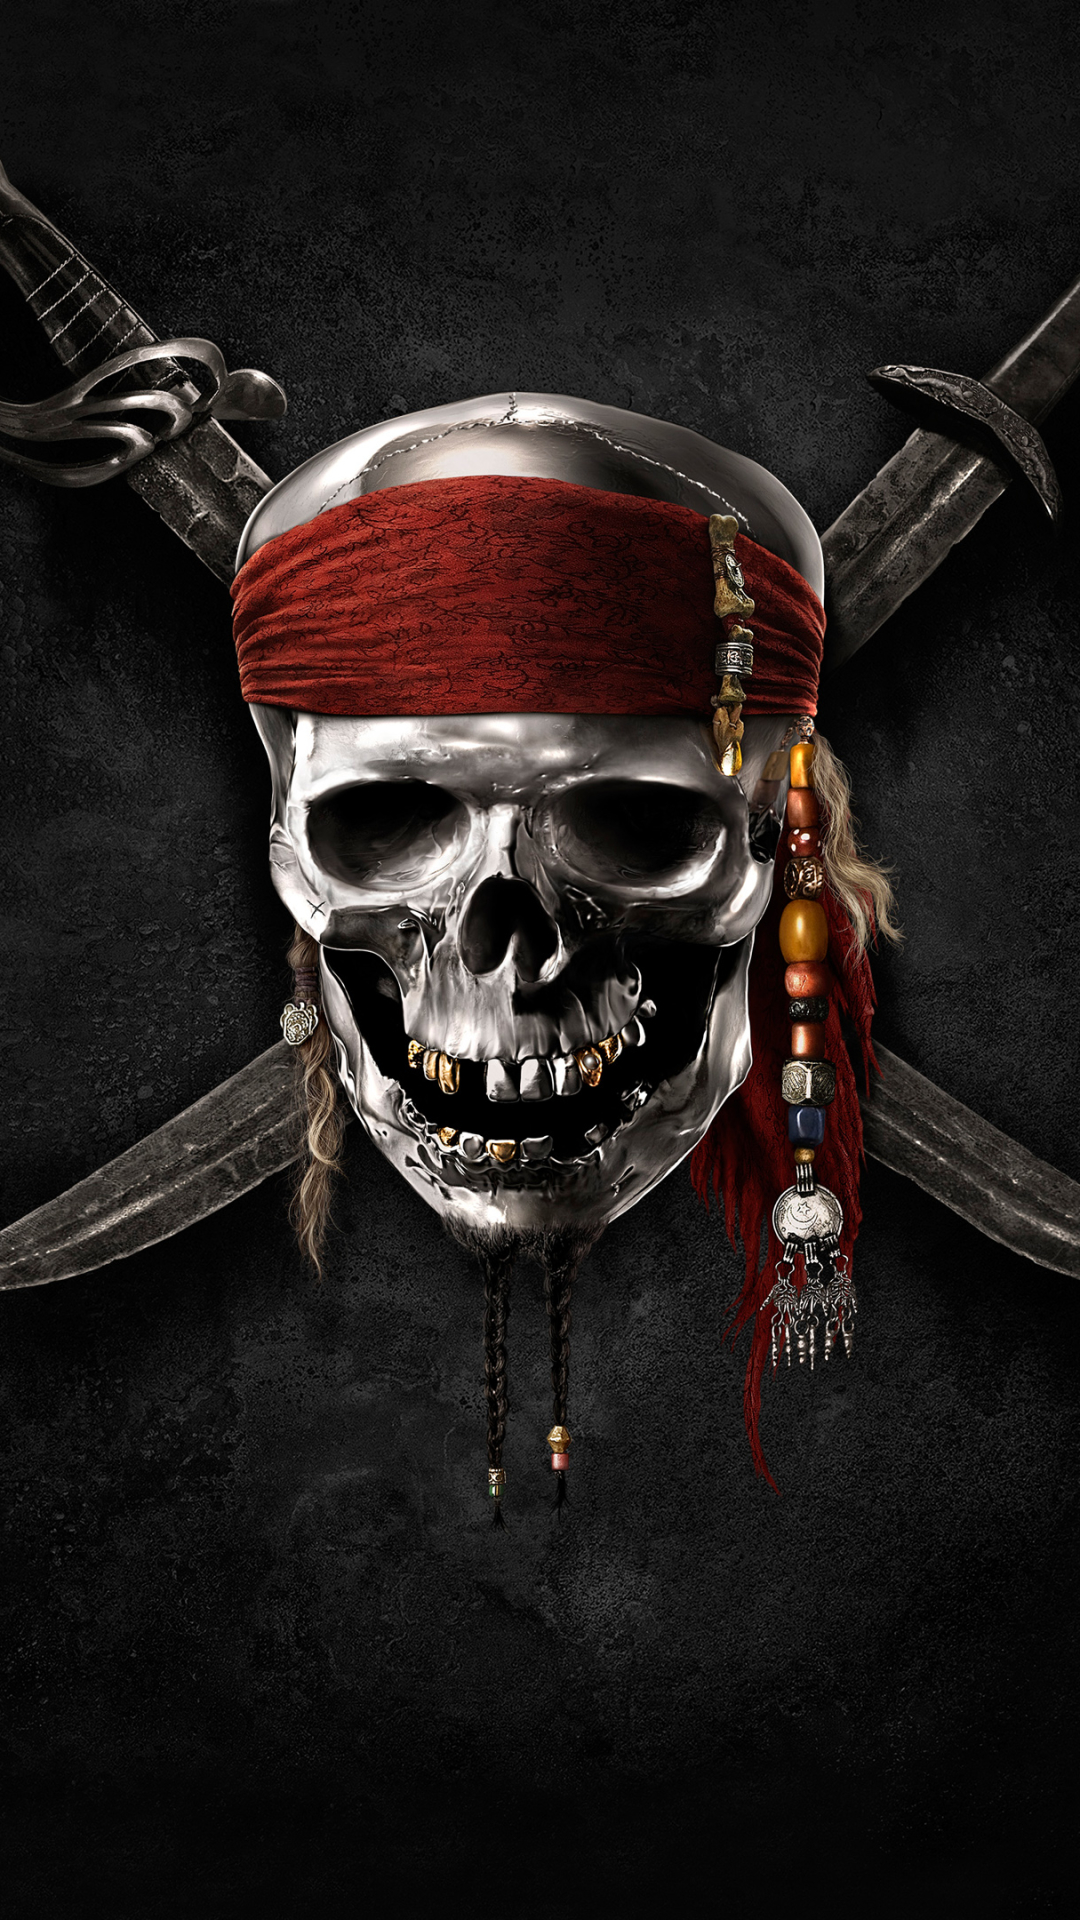 79 pirates of the caribbean apple/iphone 6 (750x1334) wallpapers